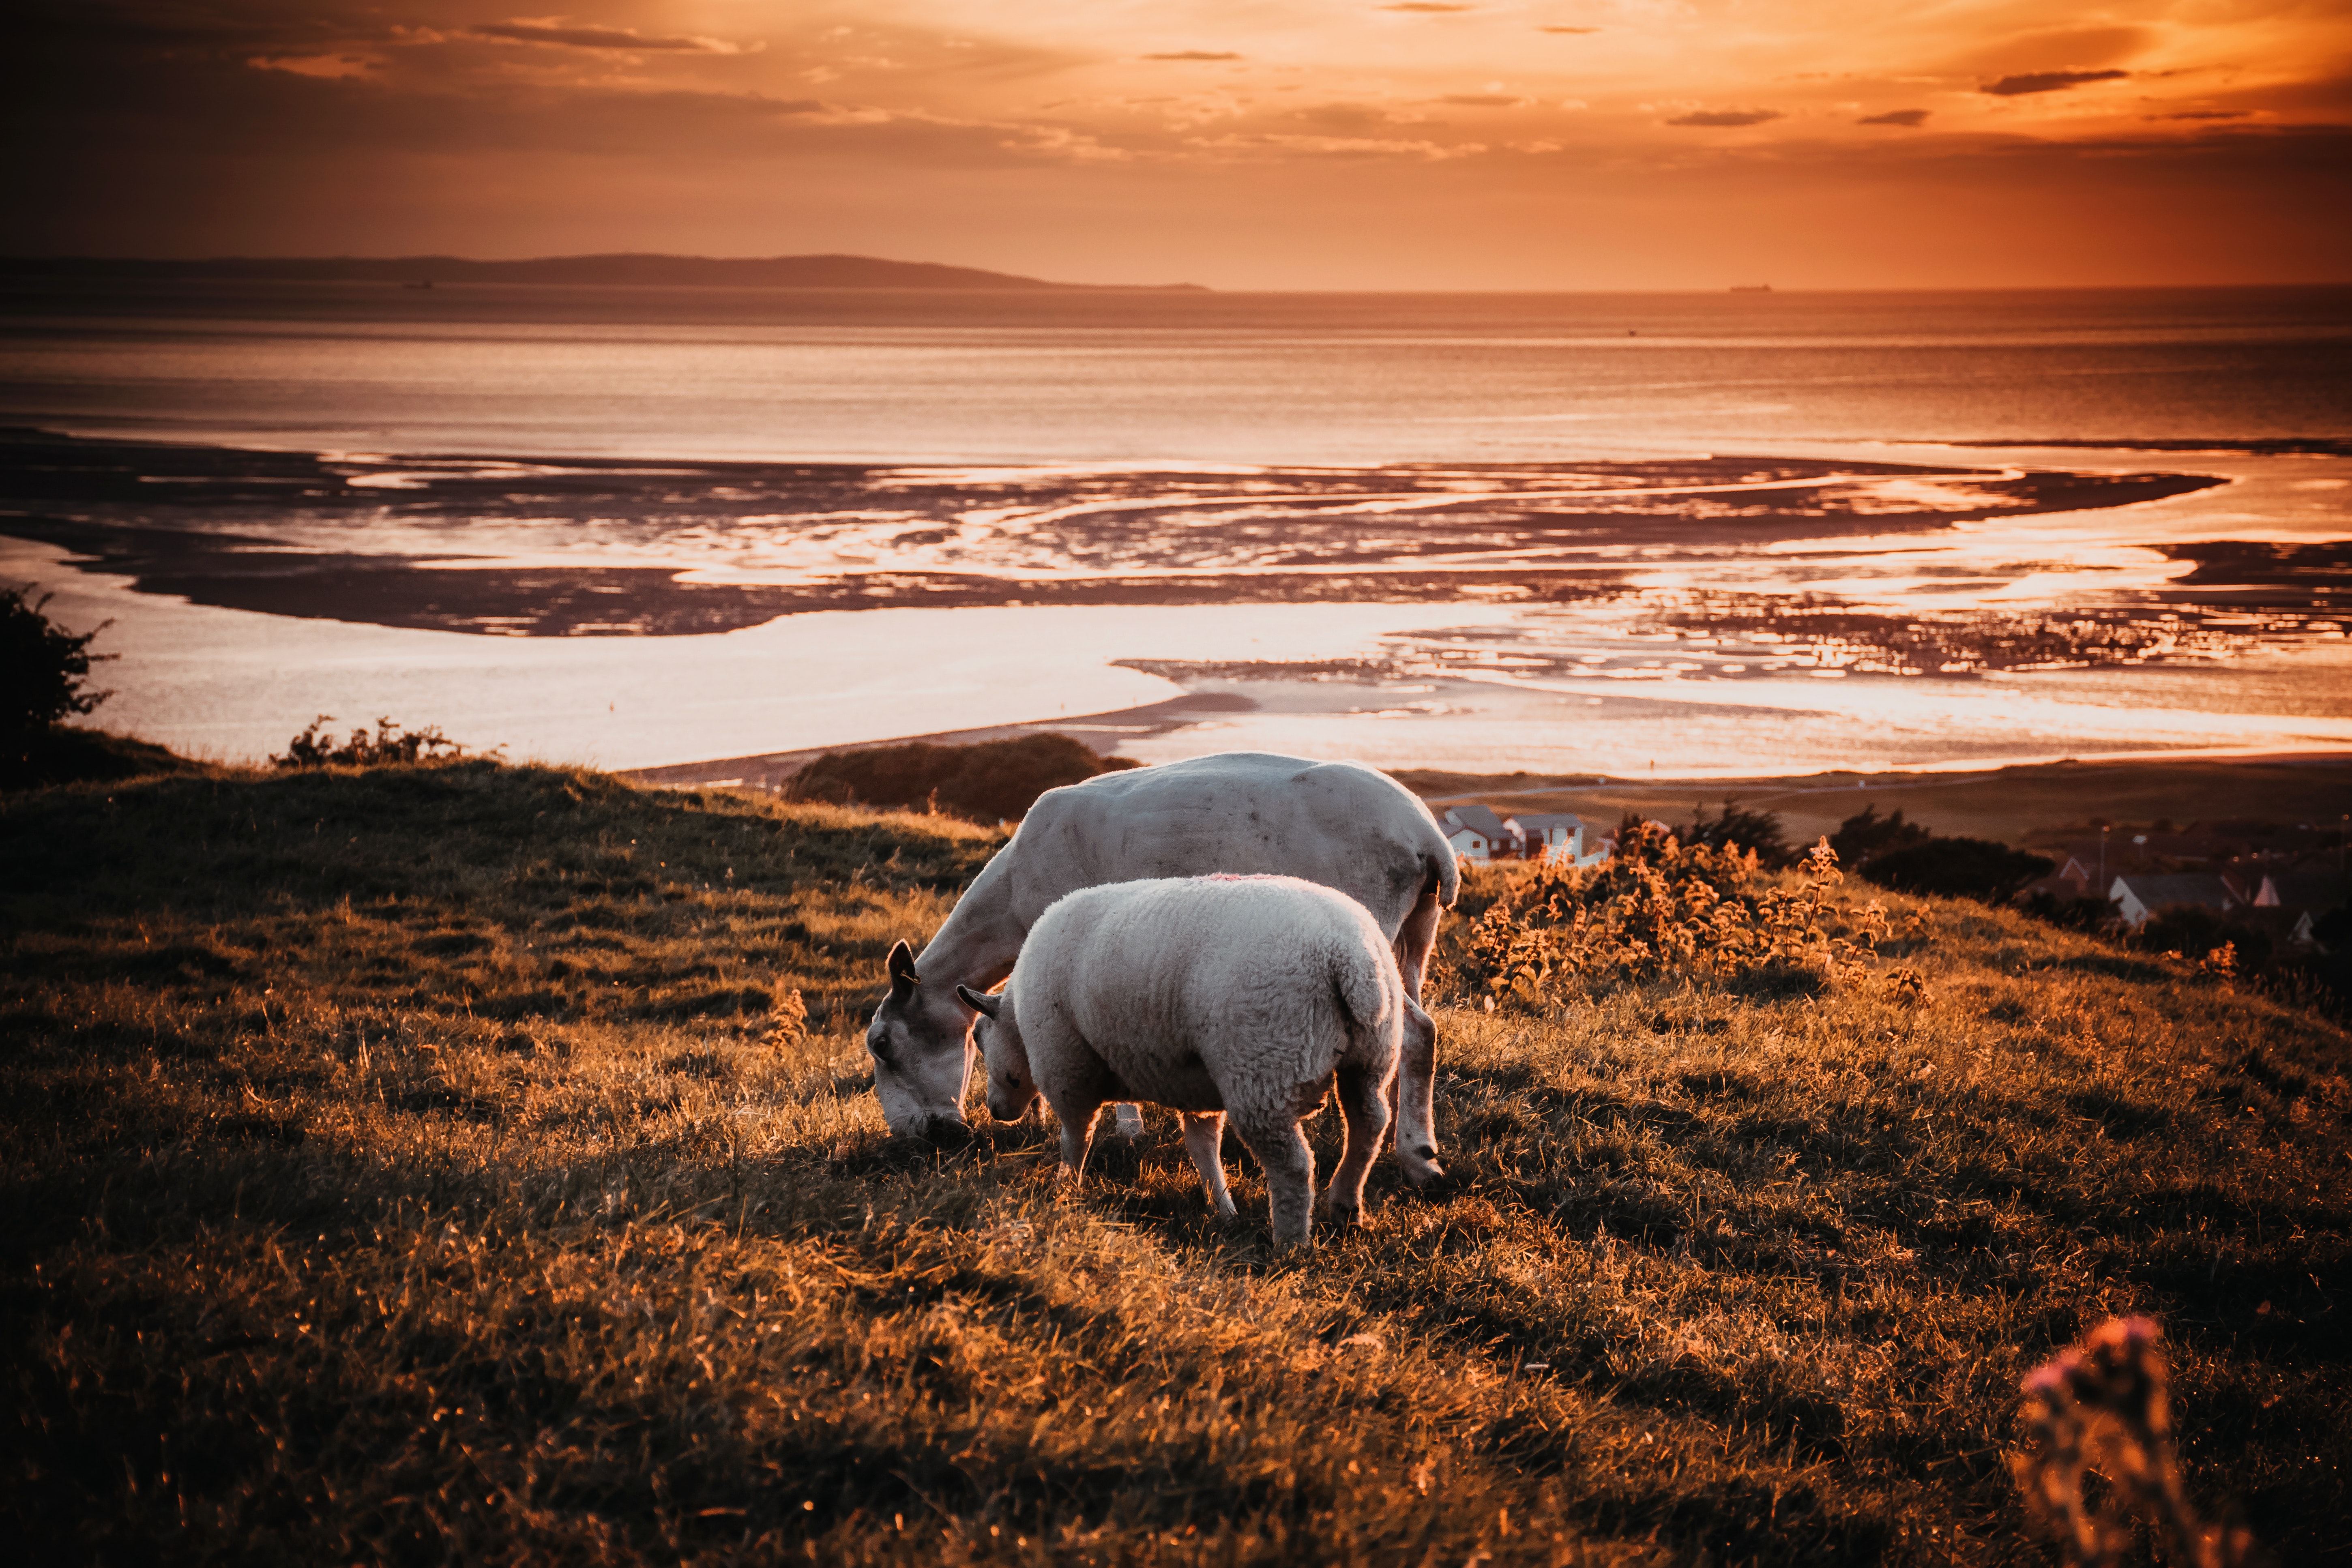 Two Animals on Field during Sunset, Animals, Scenic, Outdoors, Rural, HQ Photo